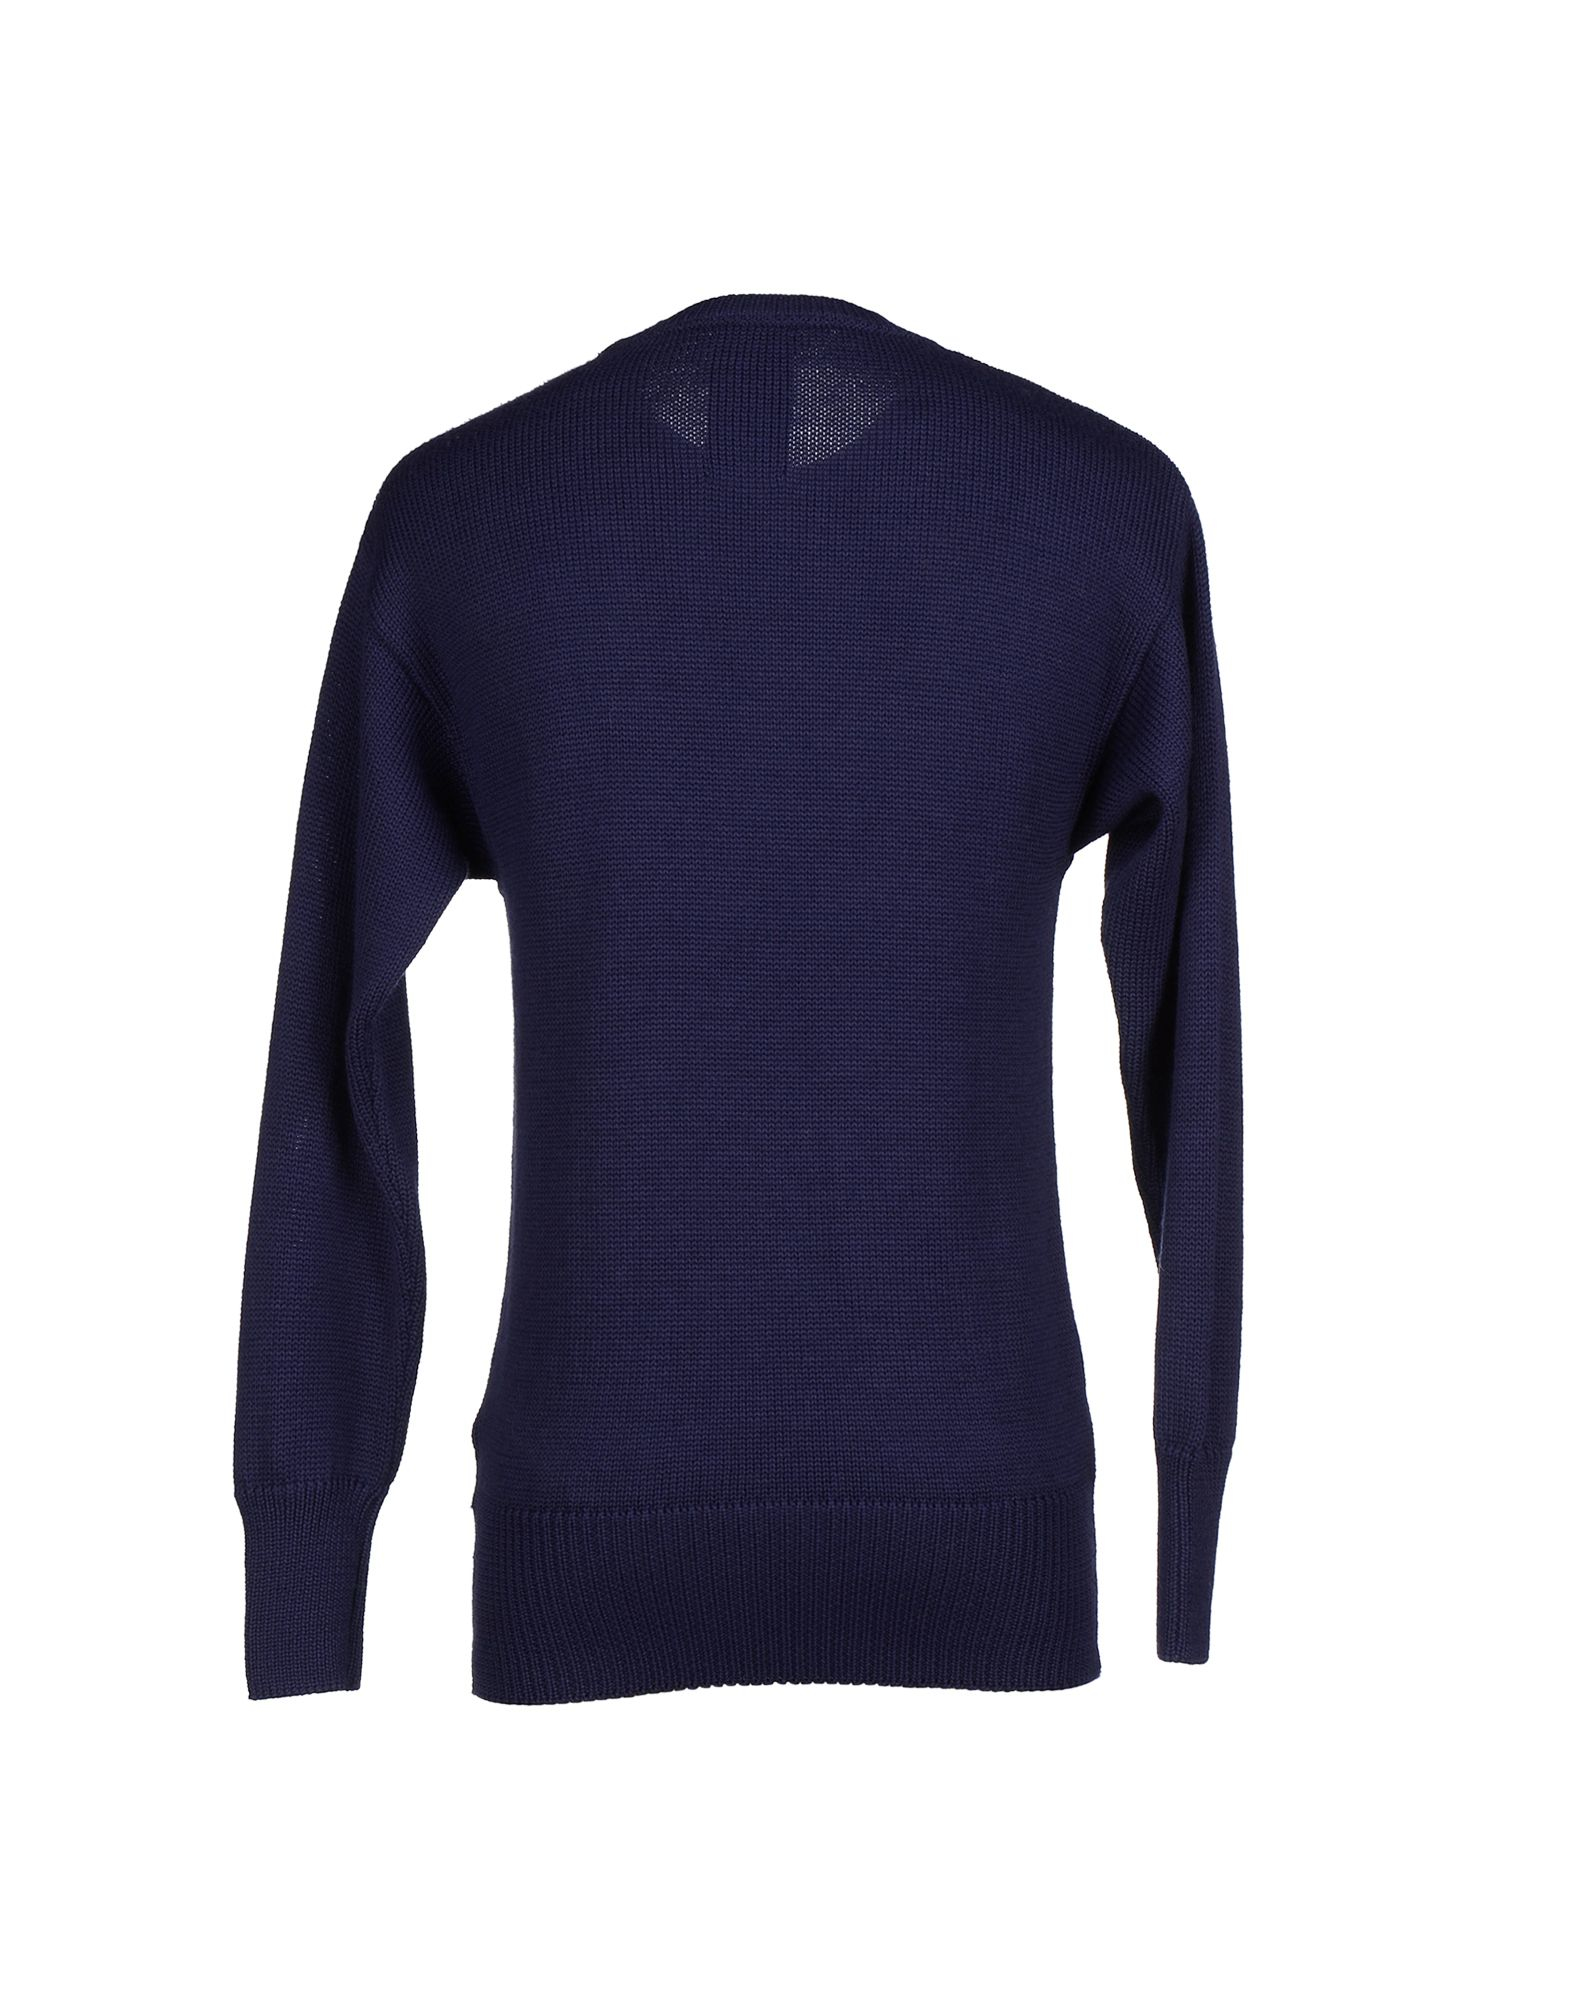 g star raw jumper in blue for men lyst. Black Bedroom Furniture Sets. Home Design Ideas